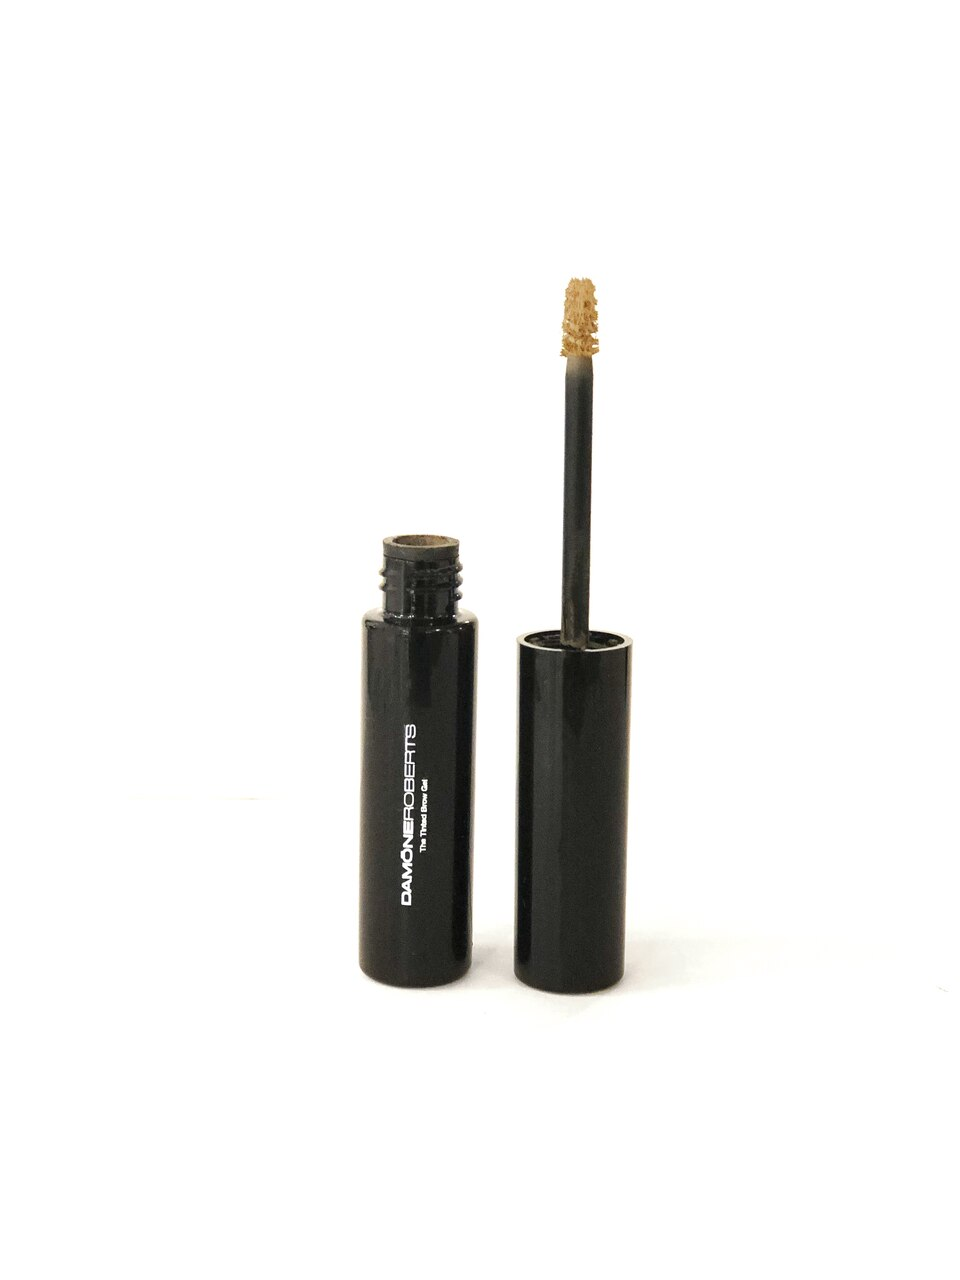 Damone Roberts Beverly Hills Blonde Tinted Eyebrow Gel (Blonde)